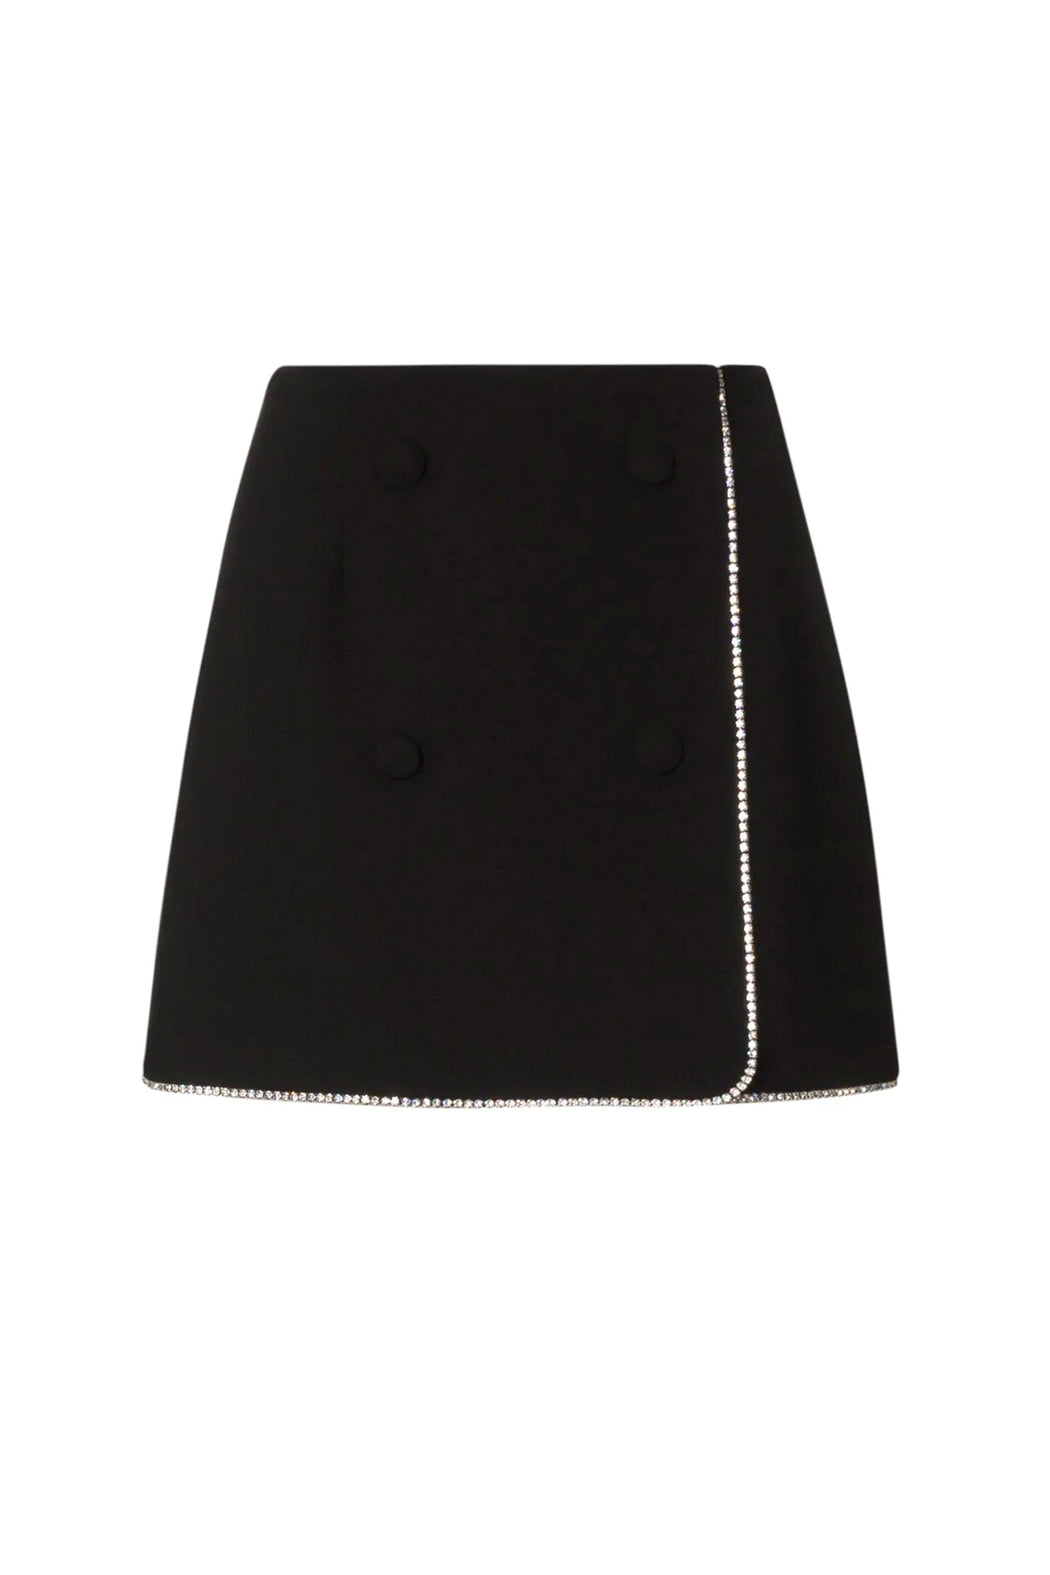 Crystal Wrap Mini Skirt - Black